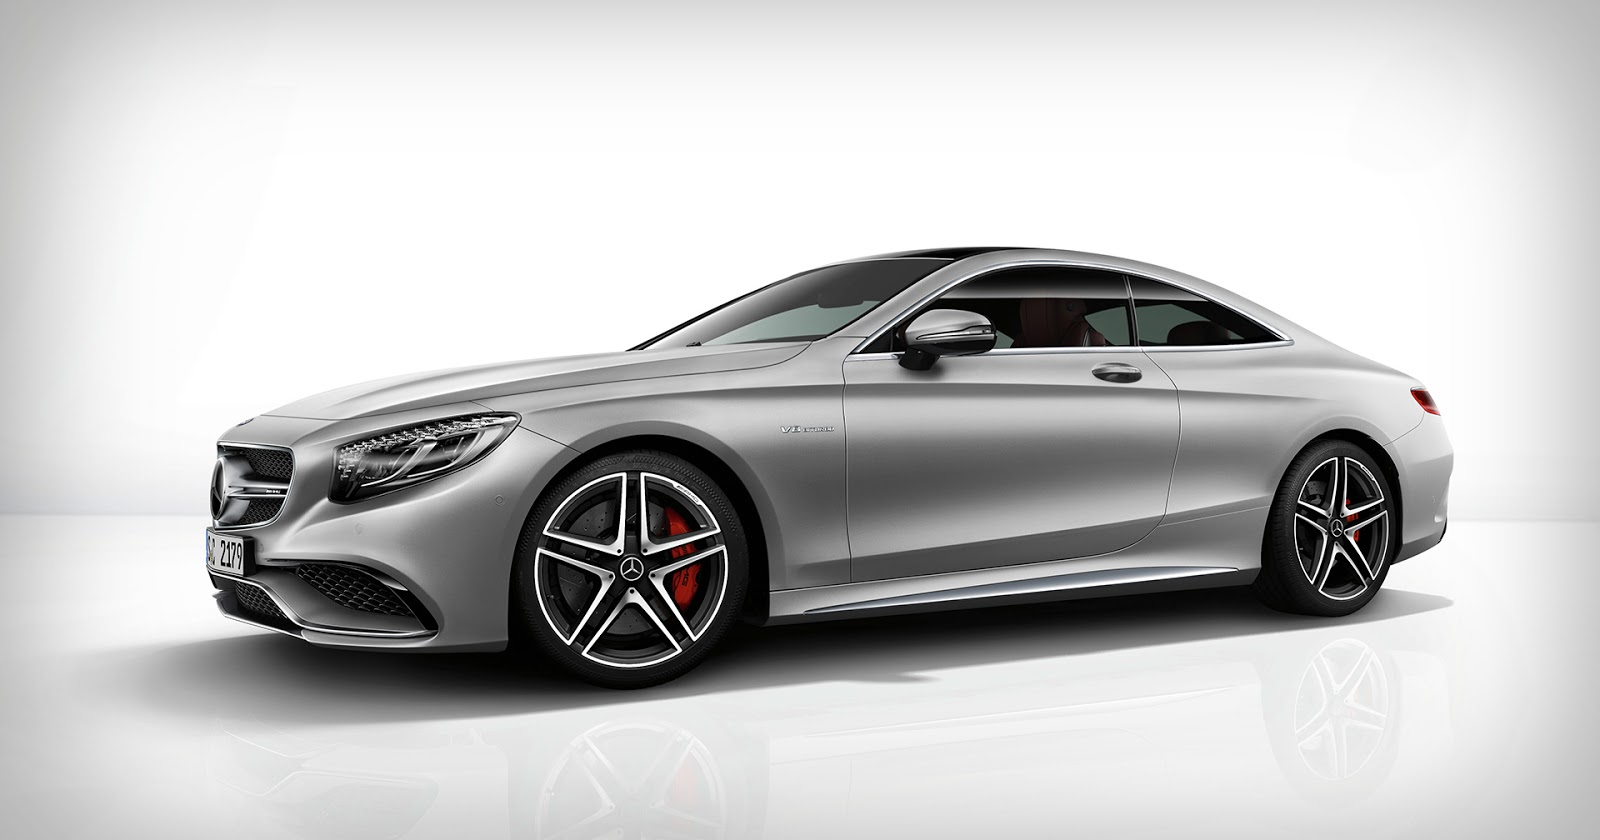 2014 mercedes benz s63 amg 4matic coupe mercedes benz for Mercedes benz s coupe 2014